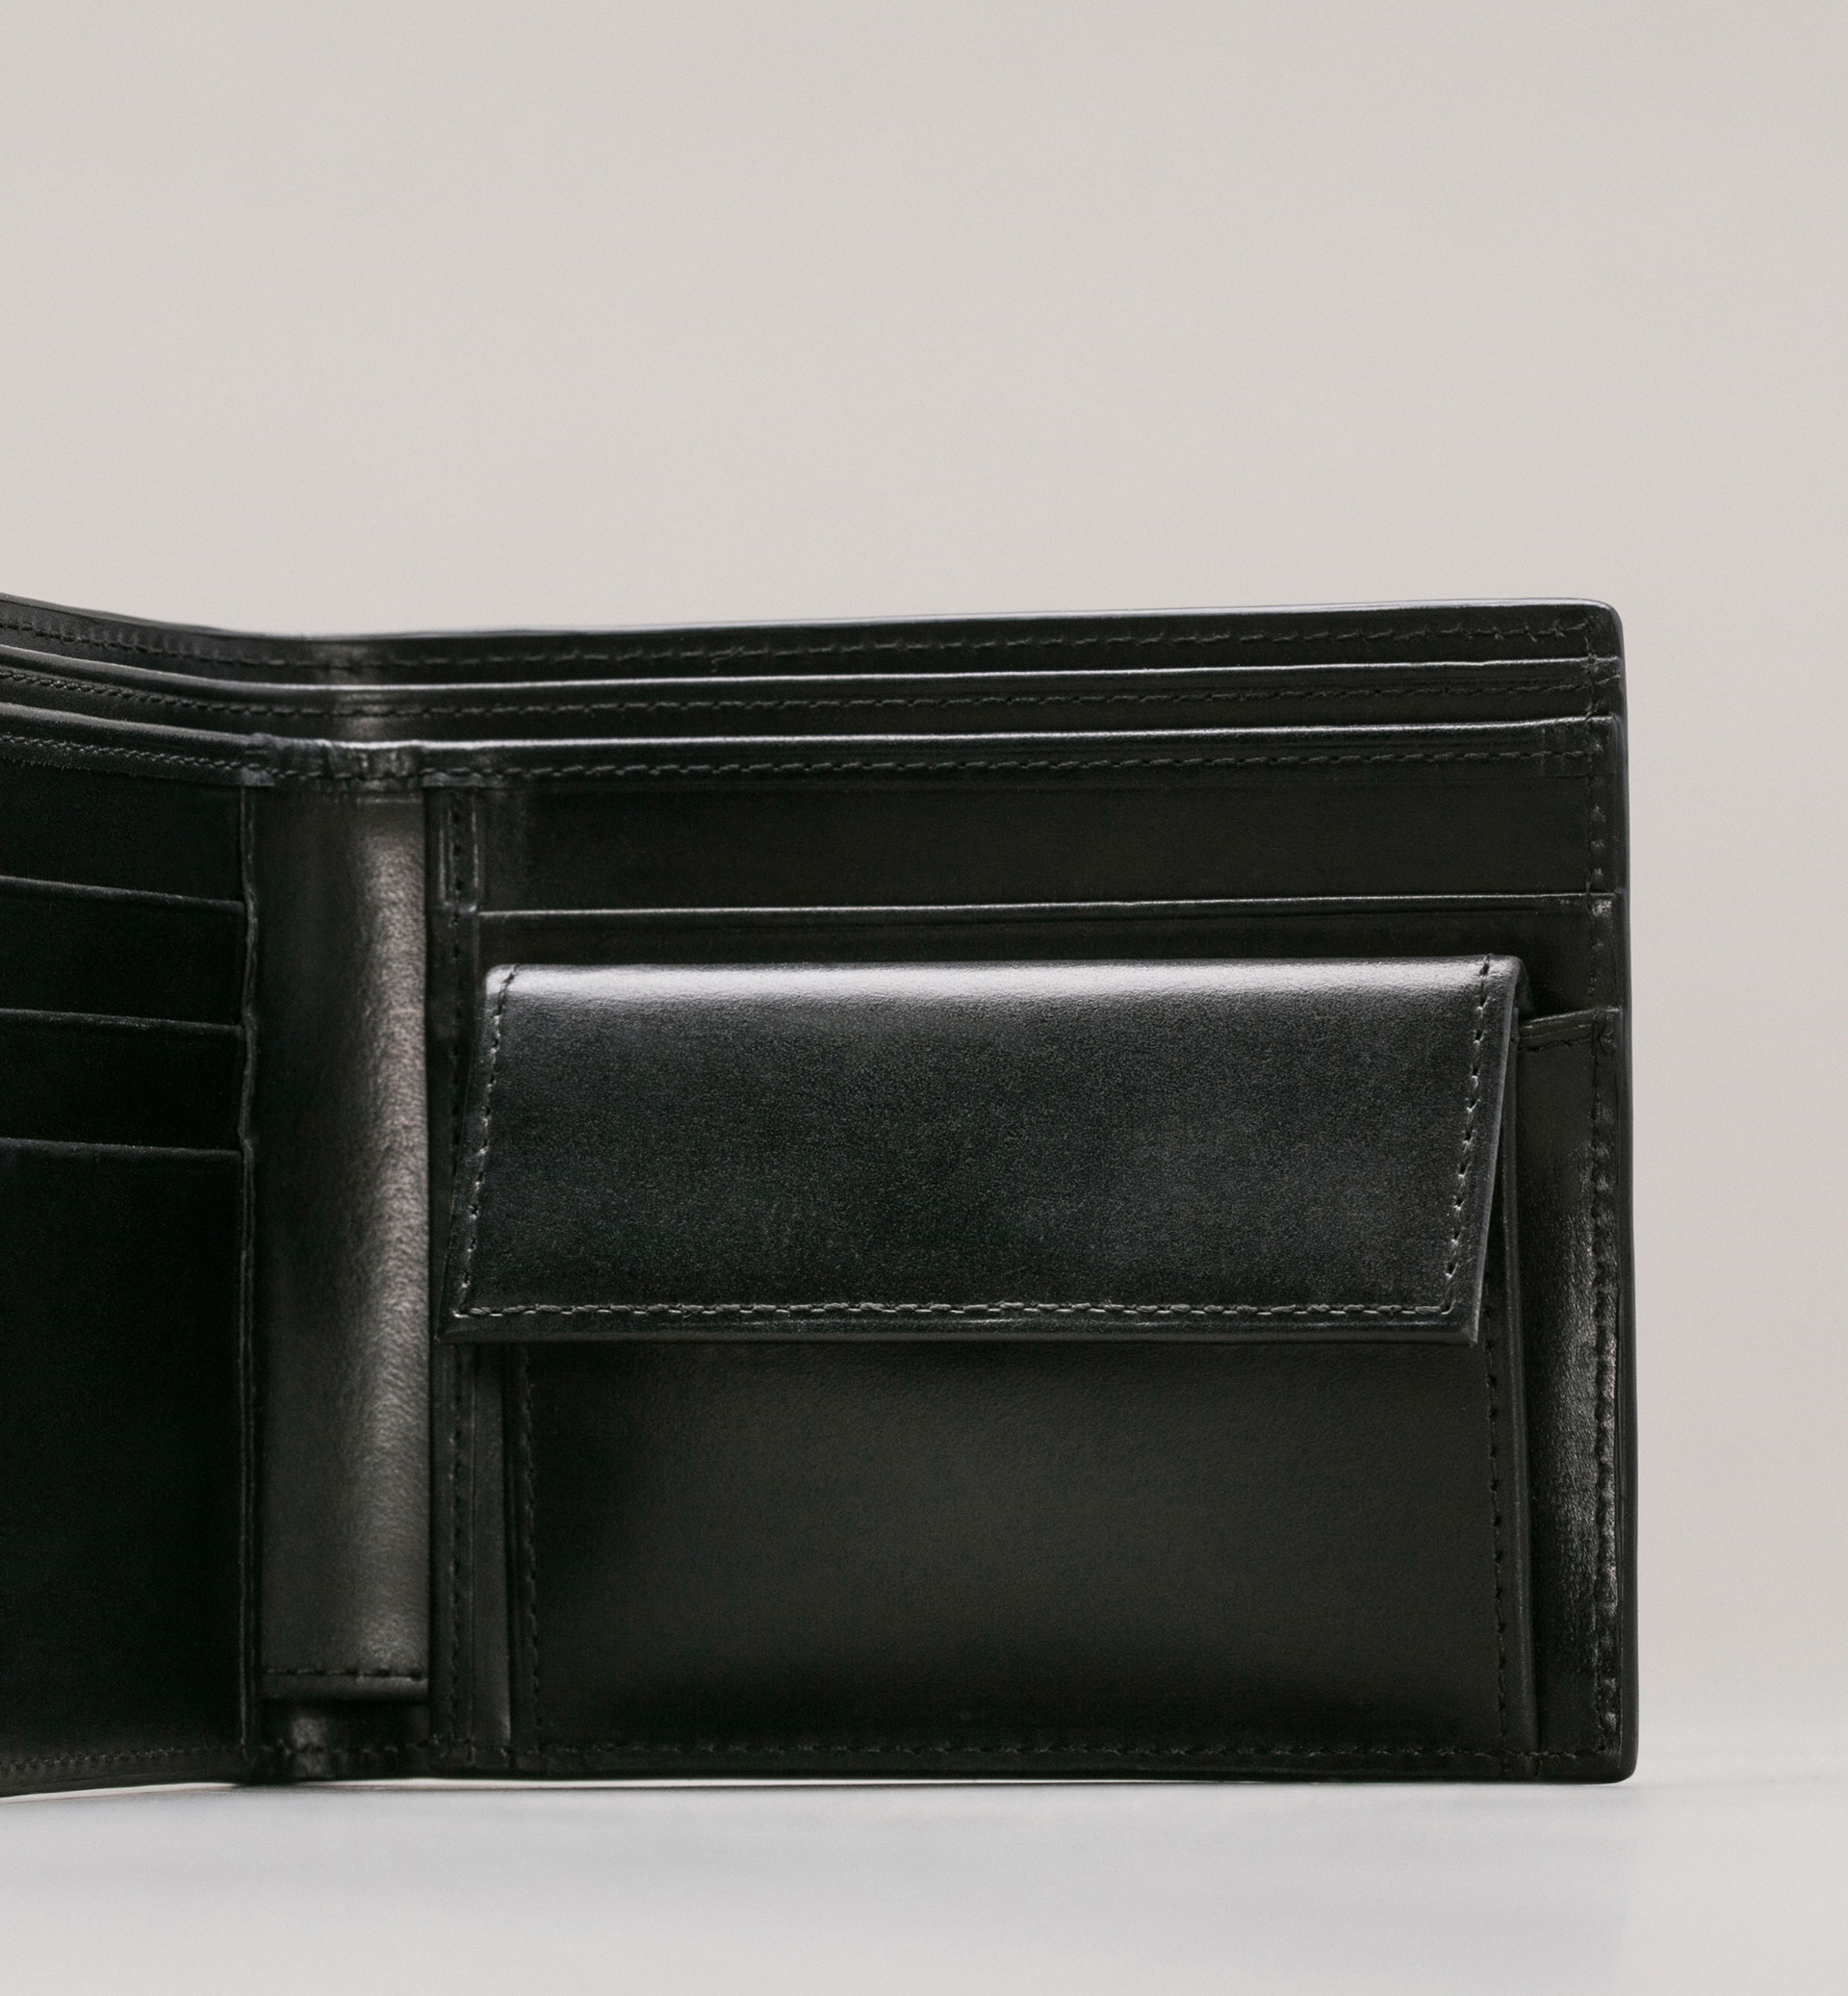 PERSONAL TAILORING LEATHER WALLET WITH COIN HOLDER